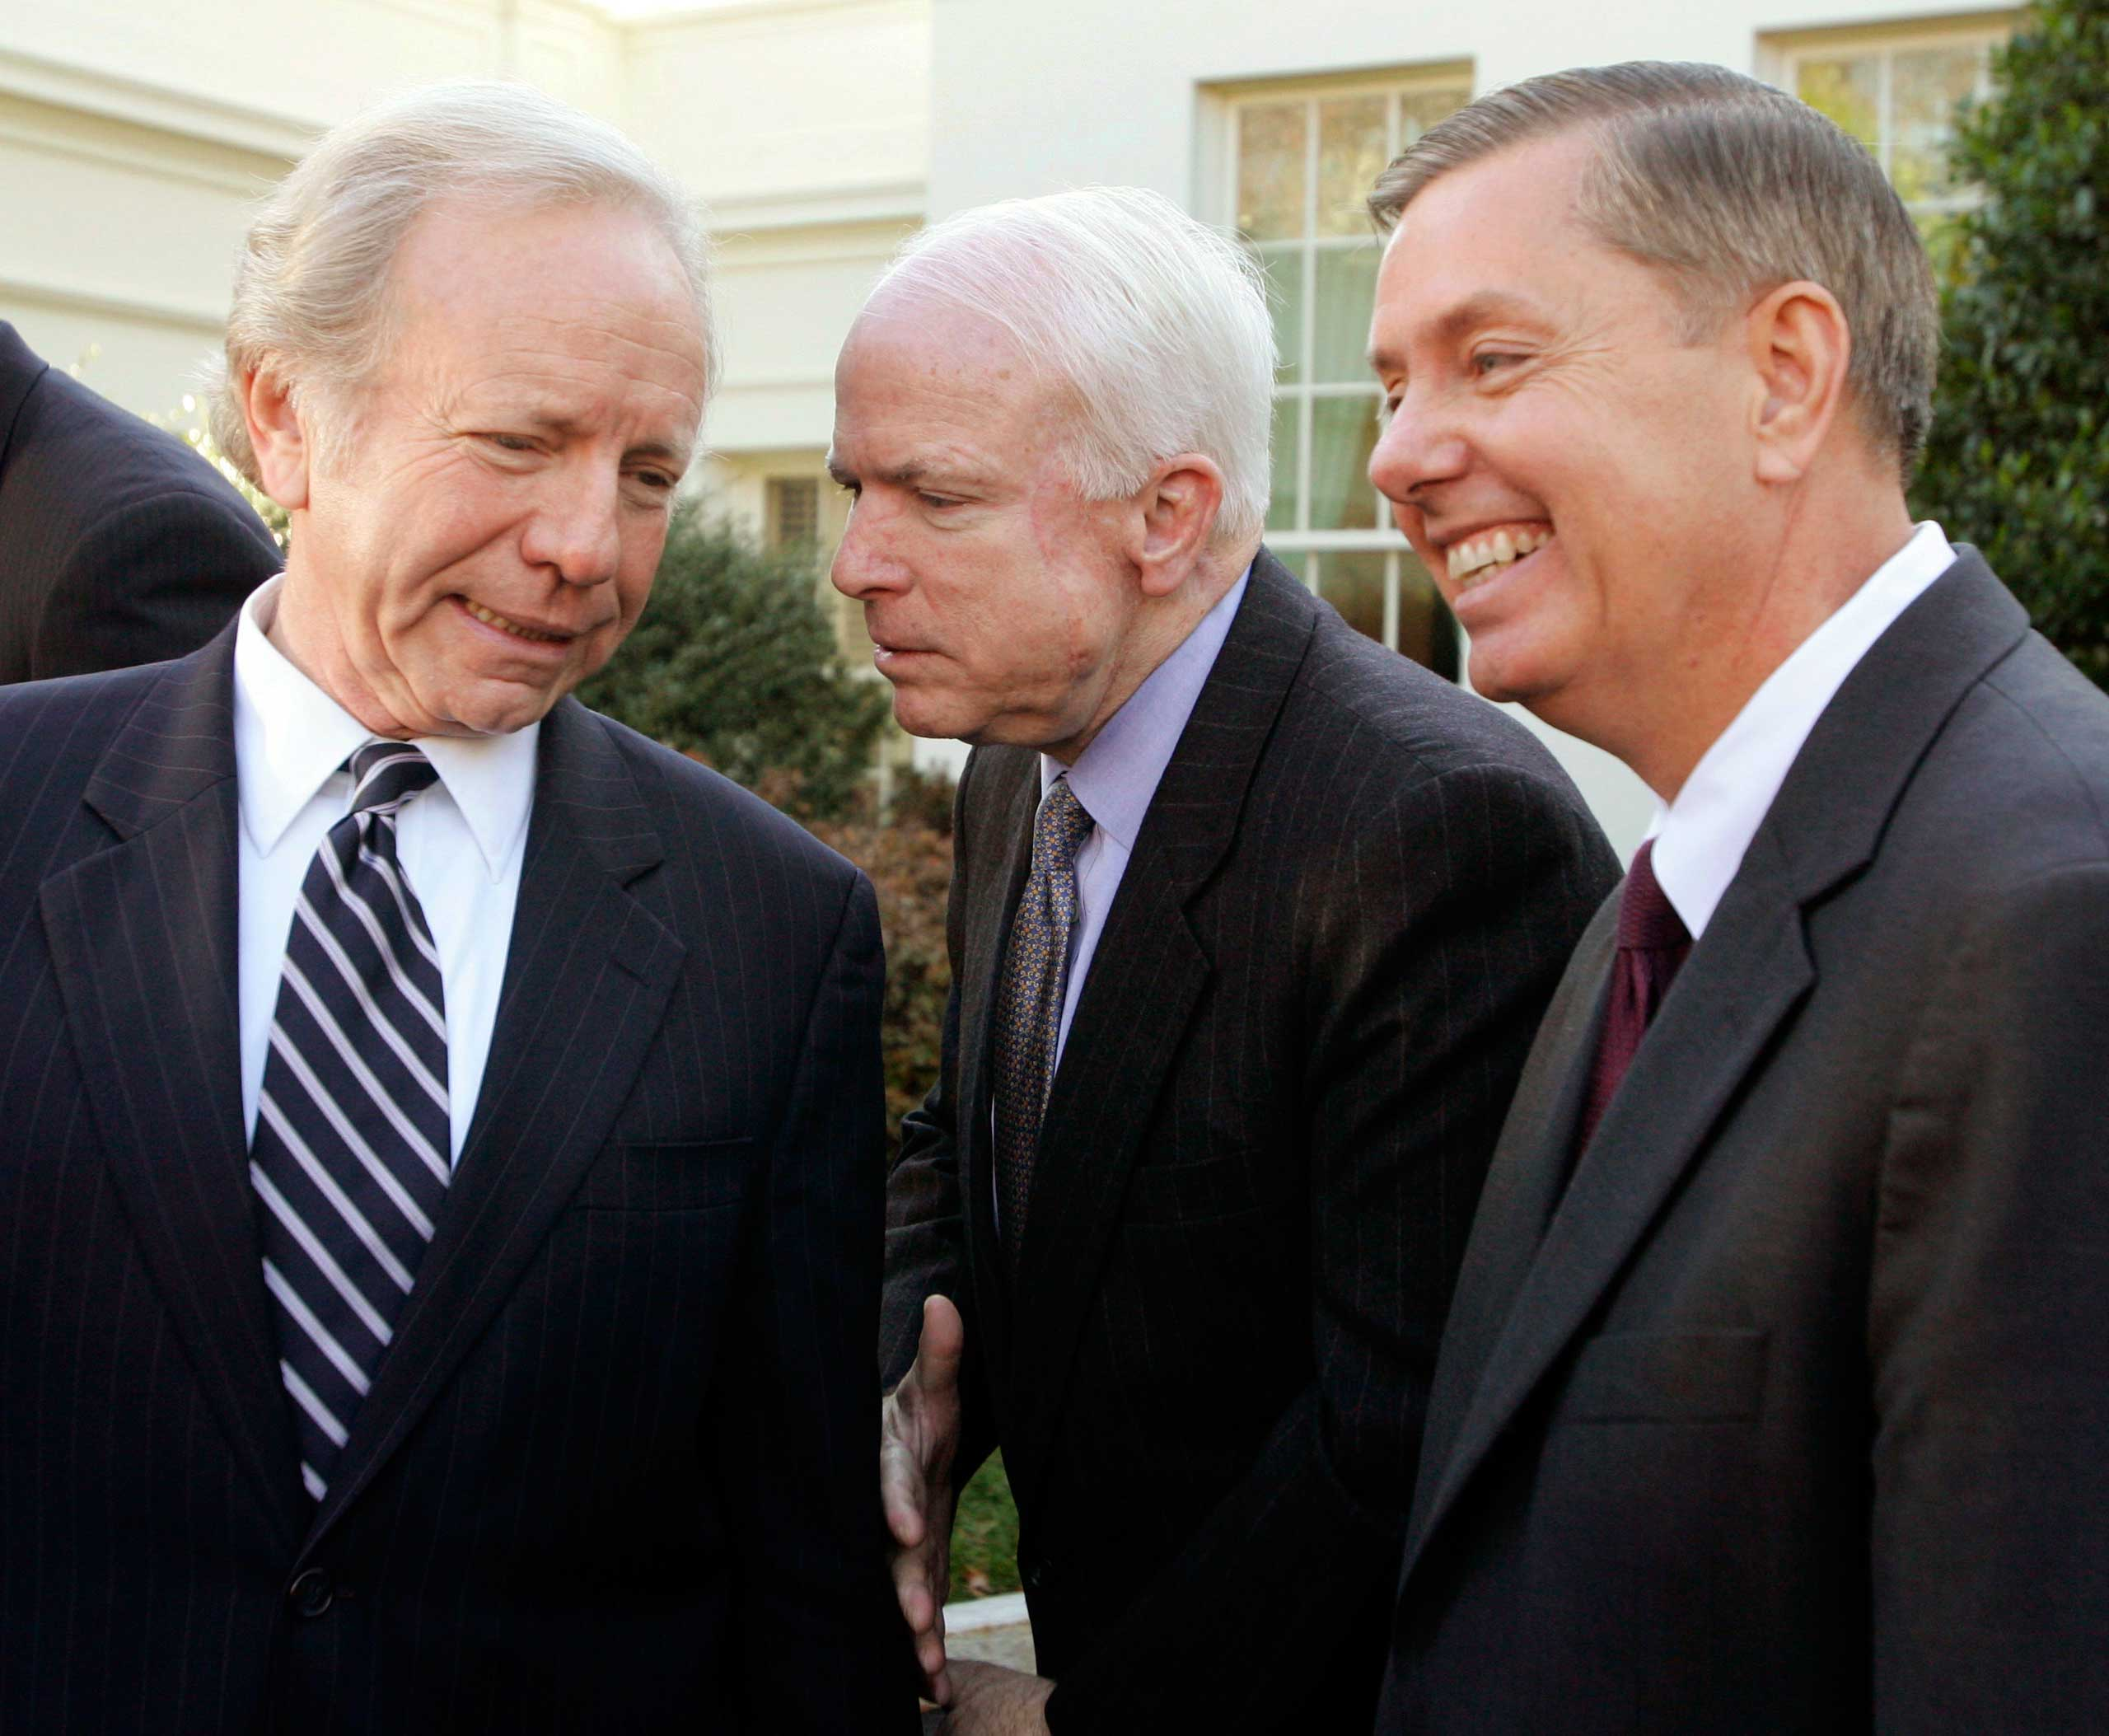 Lieberman ran for vice president in 2000 alongside Al Gore then mounted his own unsuccessful bid for the nomination in 2004.